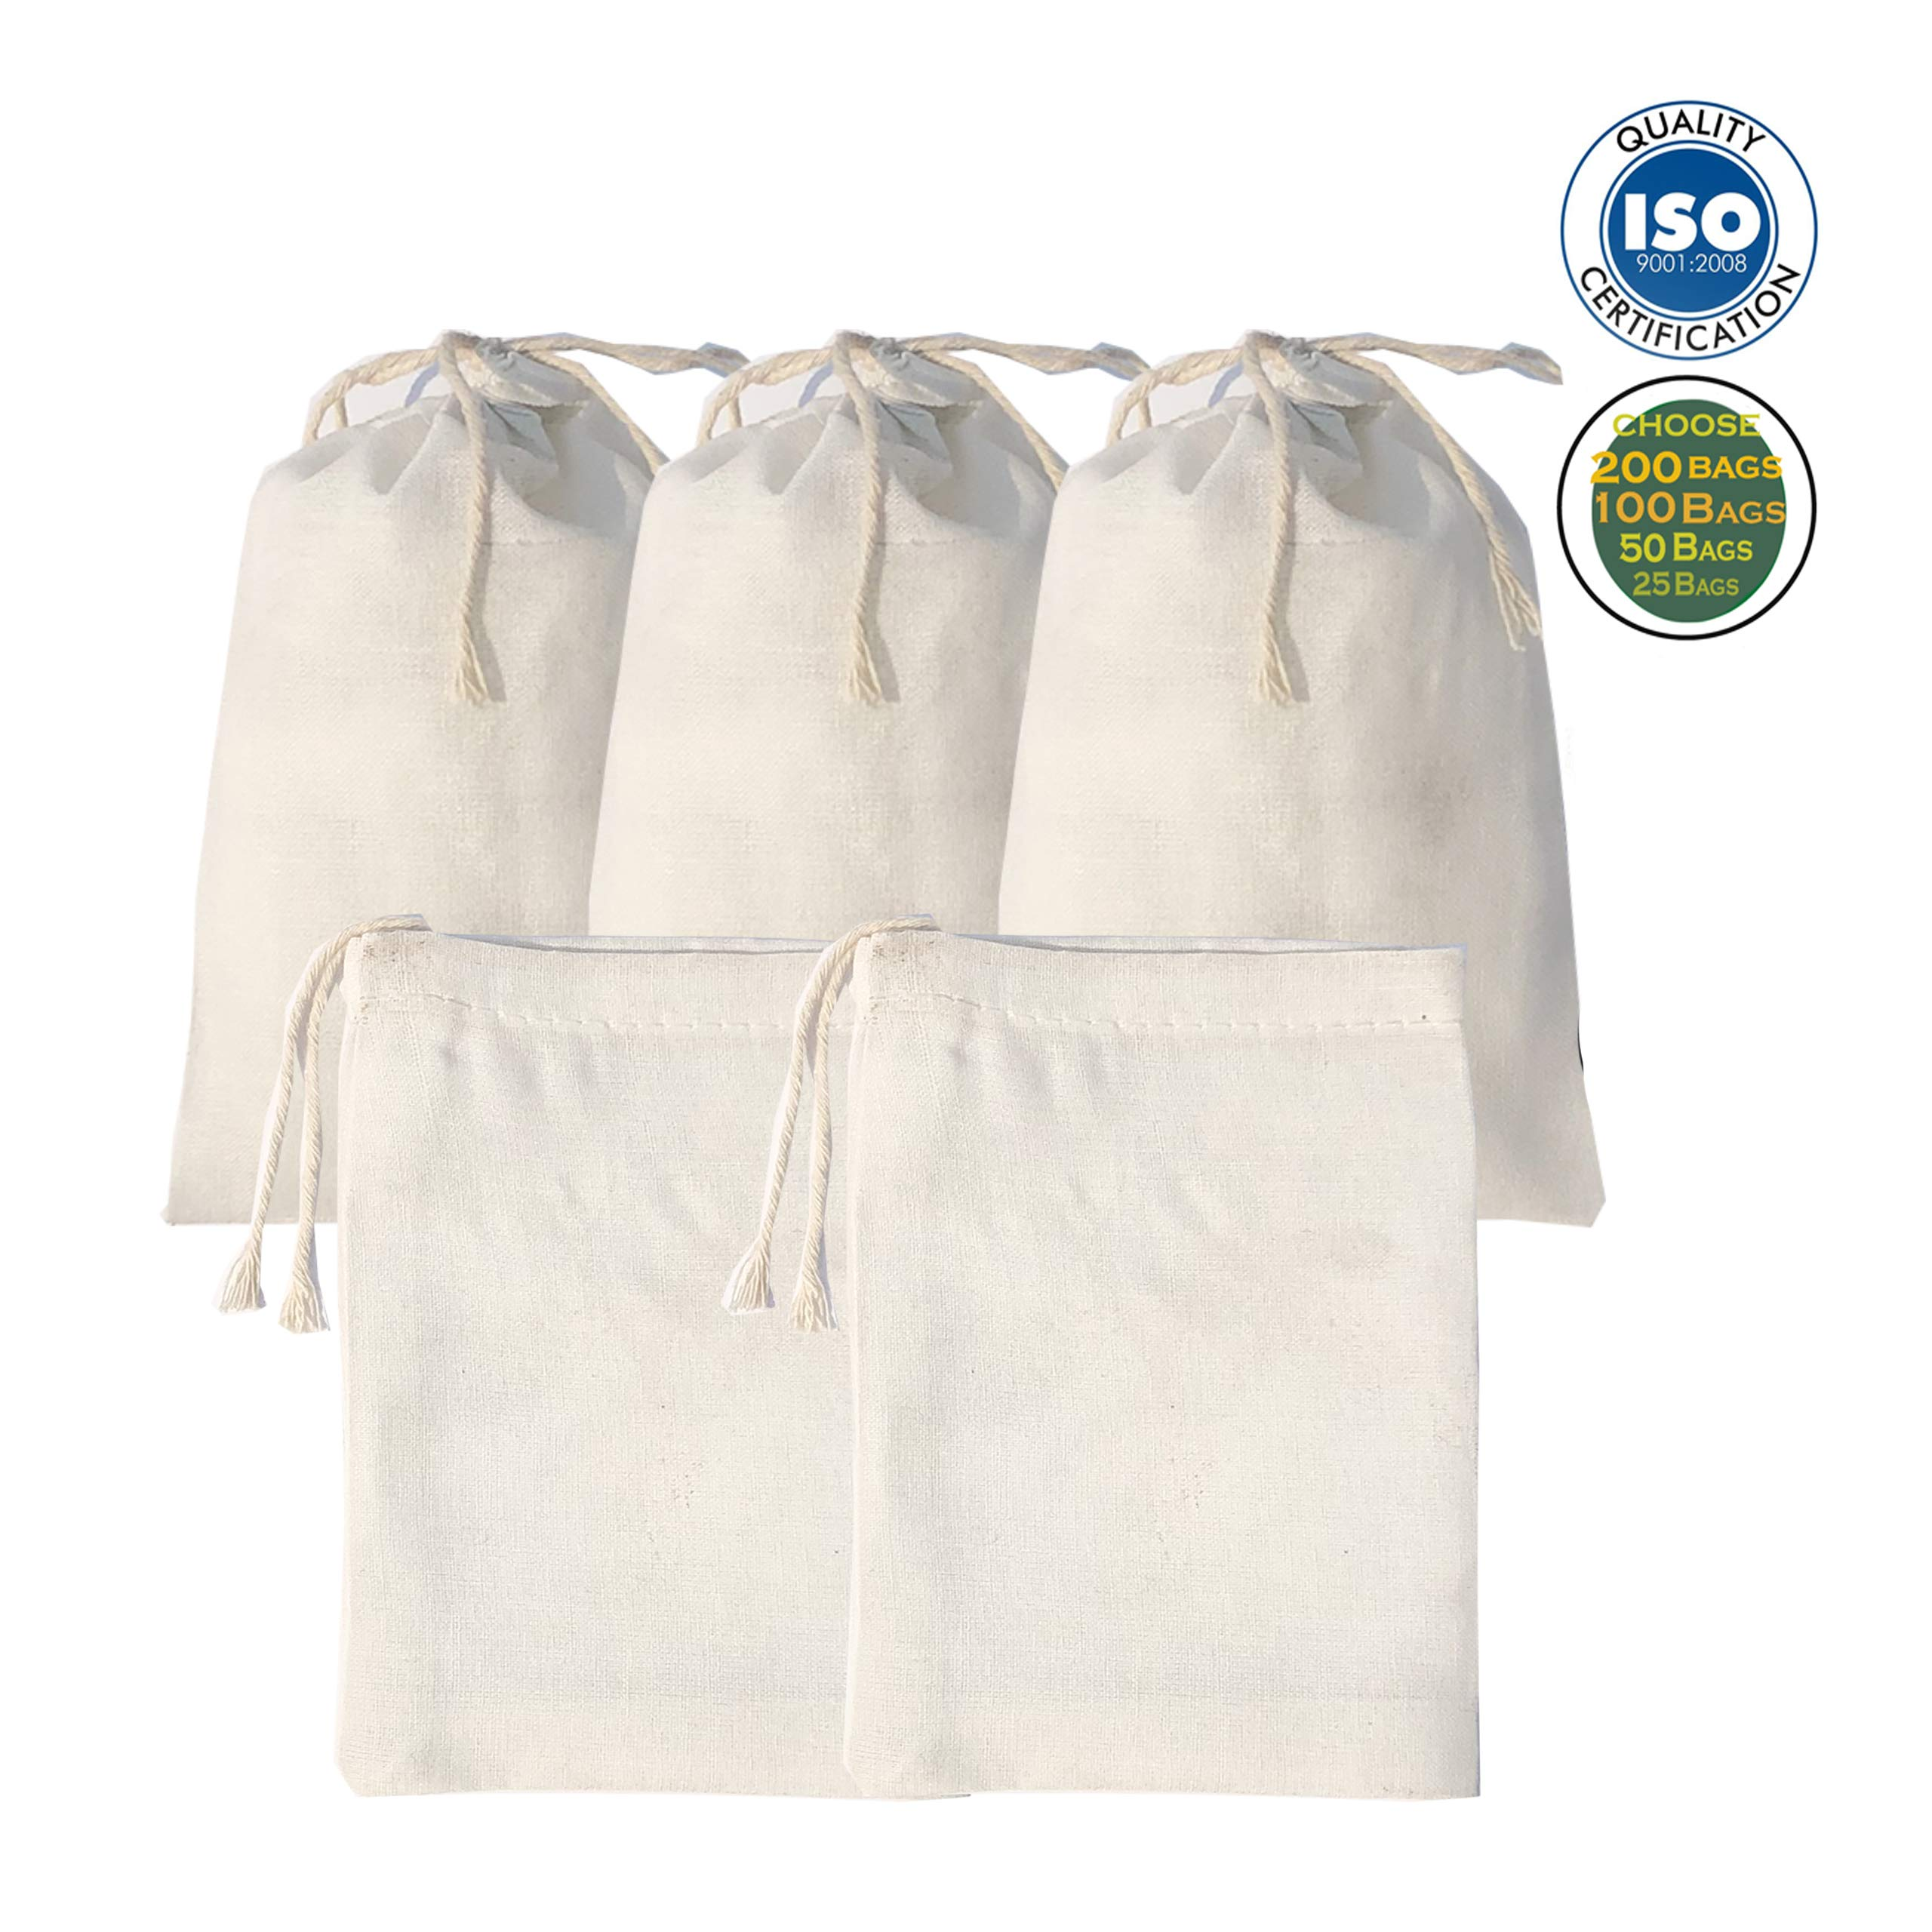 6x10 inch Muslin Cotton Premium Quality Bags, Art and Craft Bags/Pouch Thicker Fabric and Drawstring *Durable* (Pack of 25)